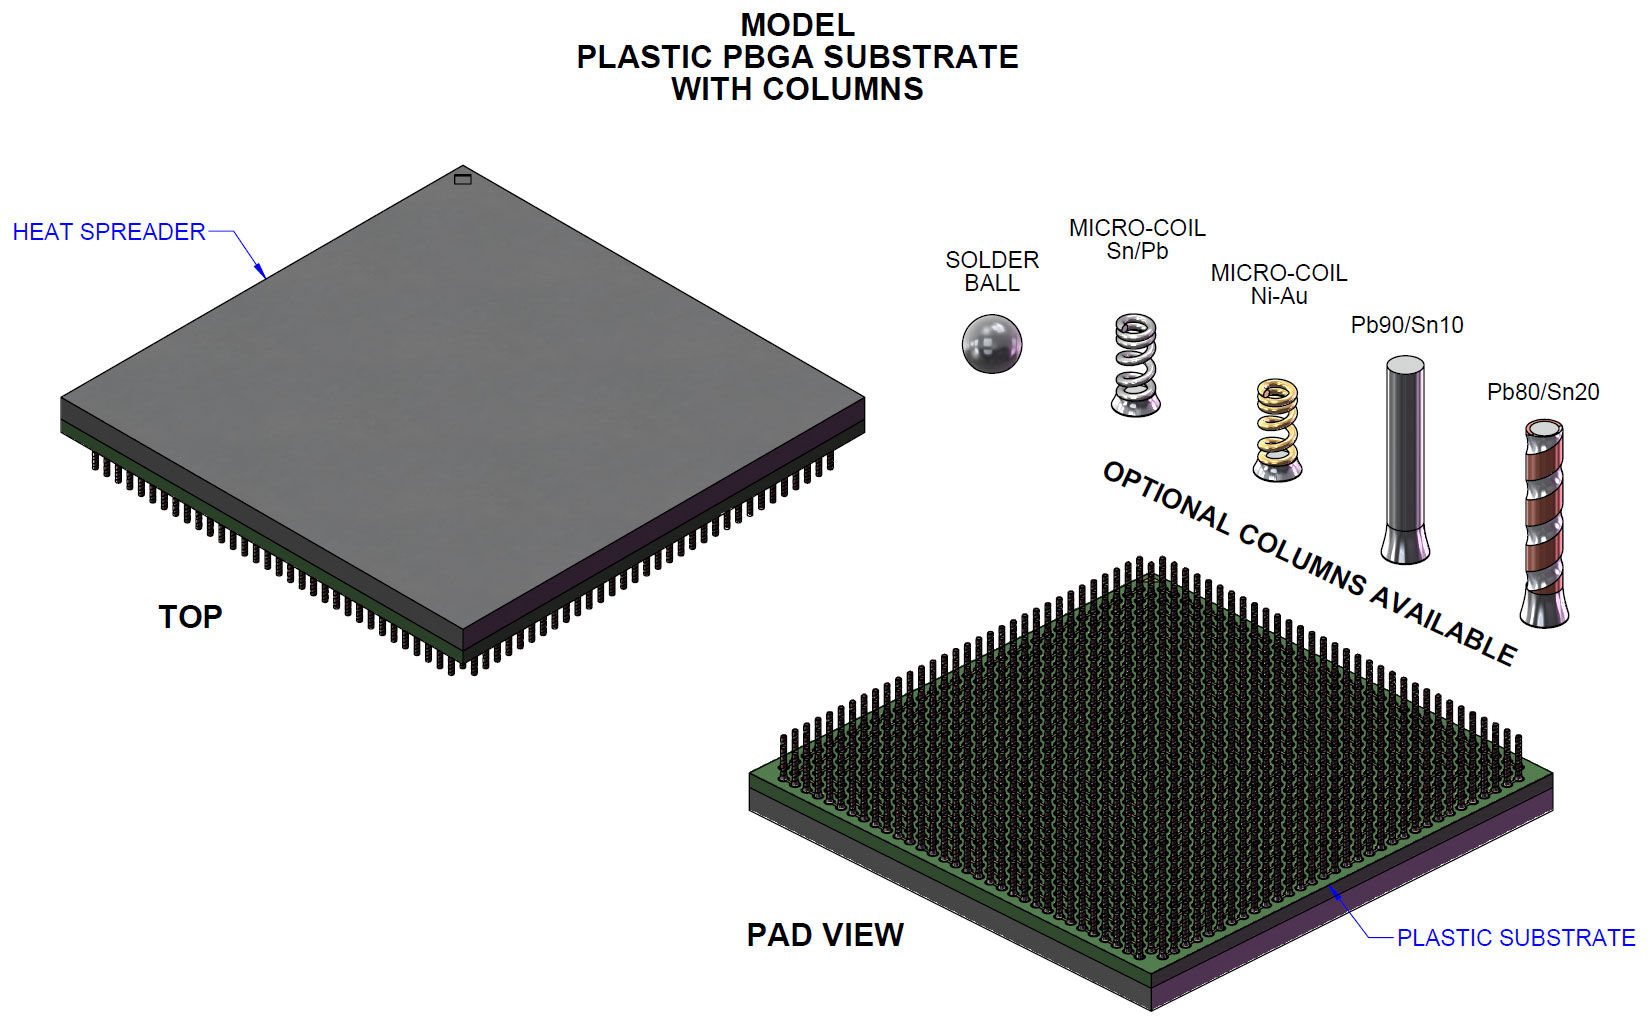 Surface Mount Device Components When I Designed The Circuit Board